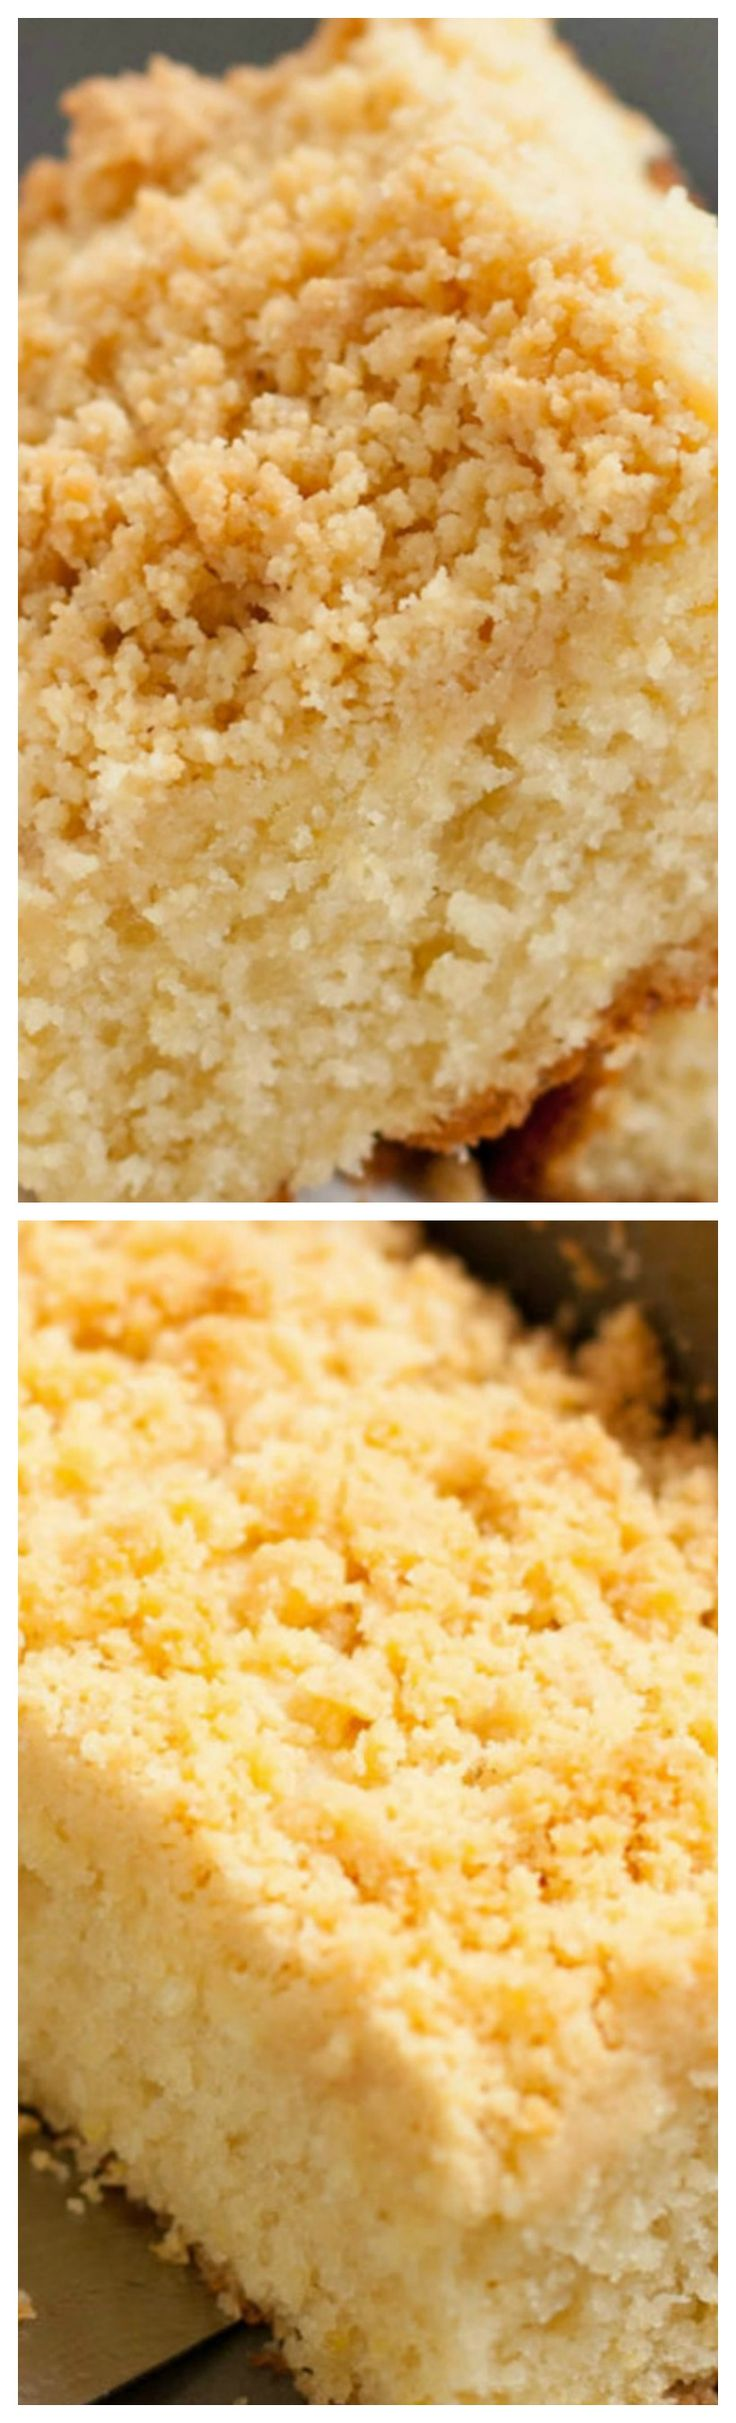 Lemon Ricotta Crumb Cake ~ The perfect marriage of fresh citrus and rich ricotta cheese, topped with a buttery shortbread cookie crumb topping!